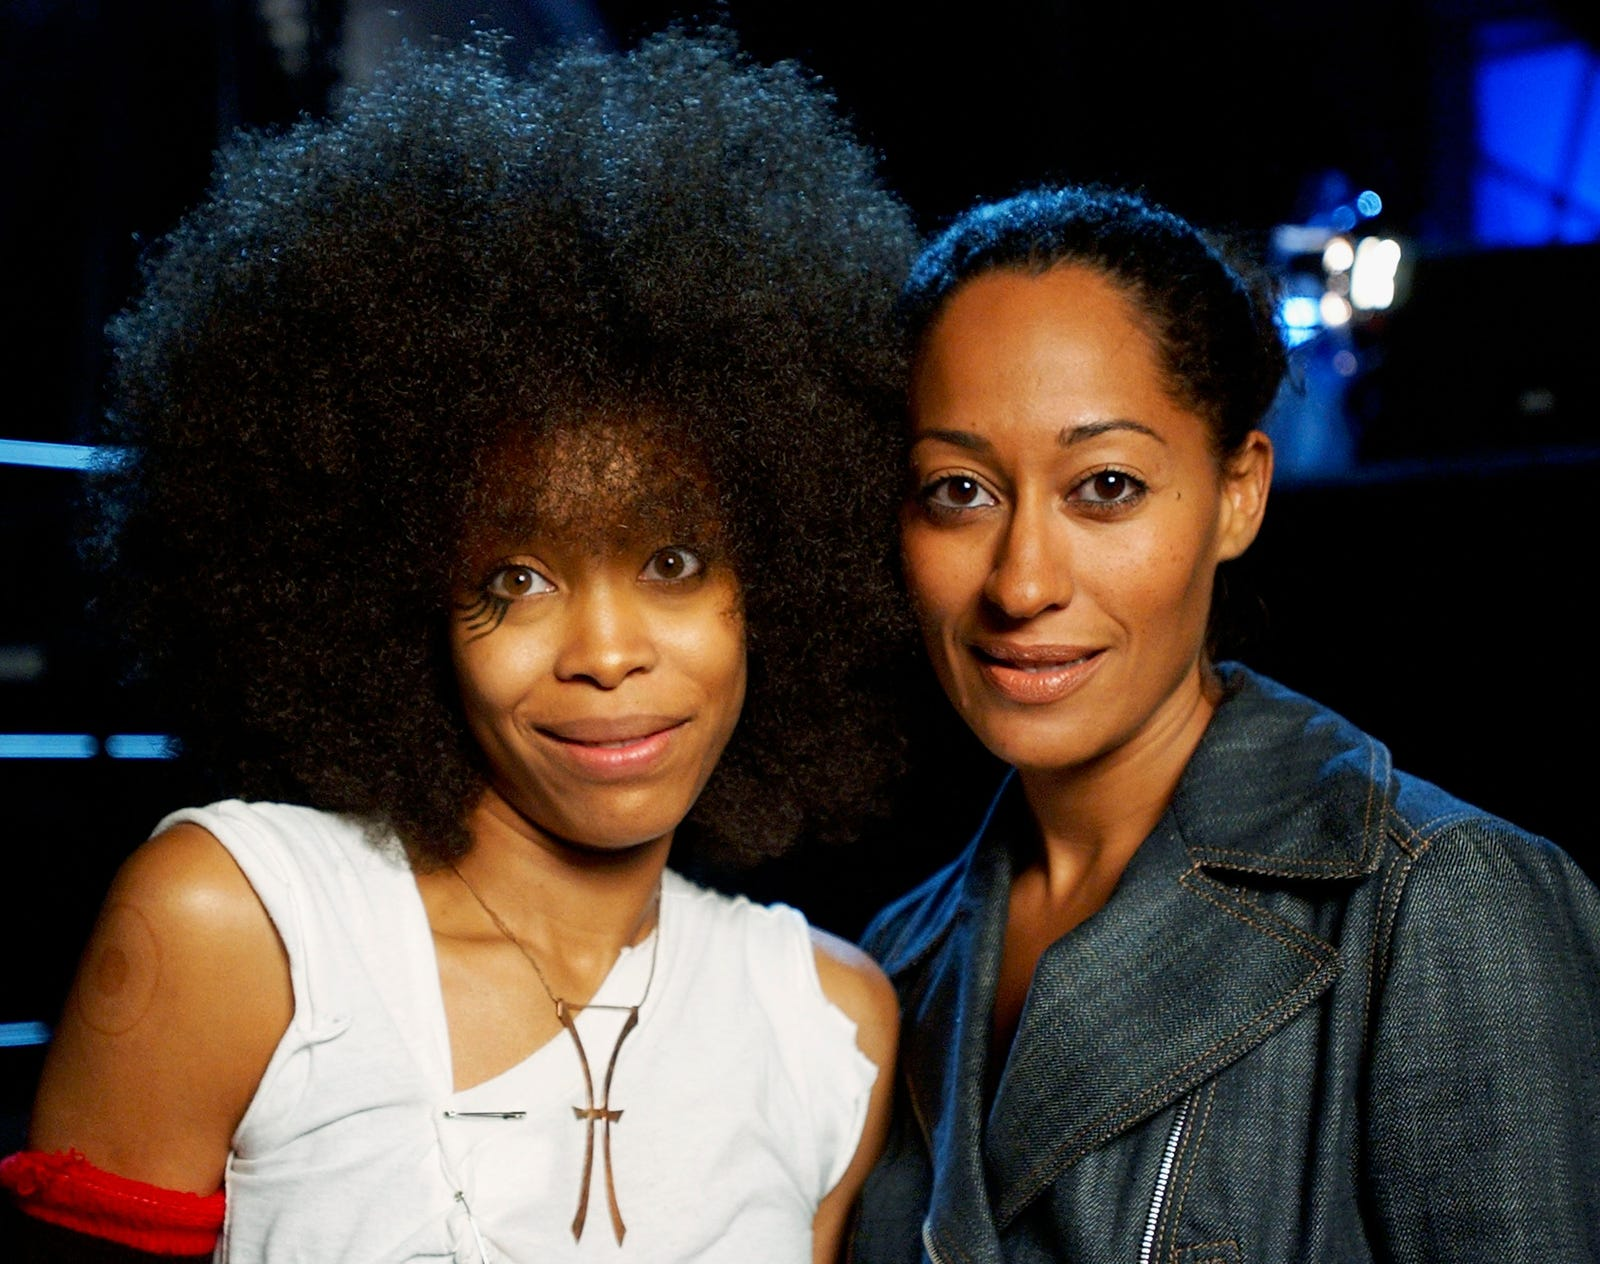 Erykah Badu, (l) and Actress Tracee Ellis Ross (R) at the 2003 Essence Festival on July 3, 2003 in New Orleans, La.